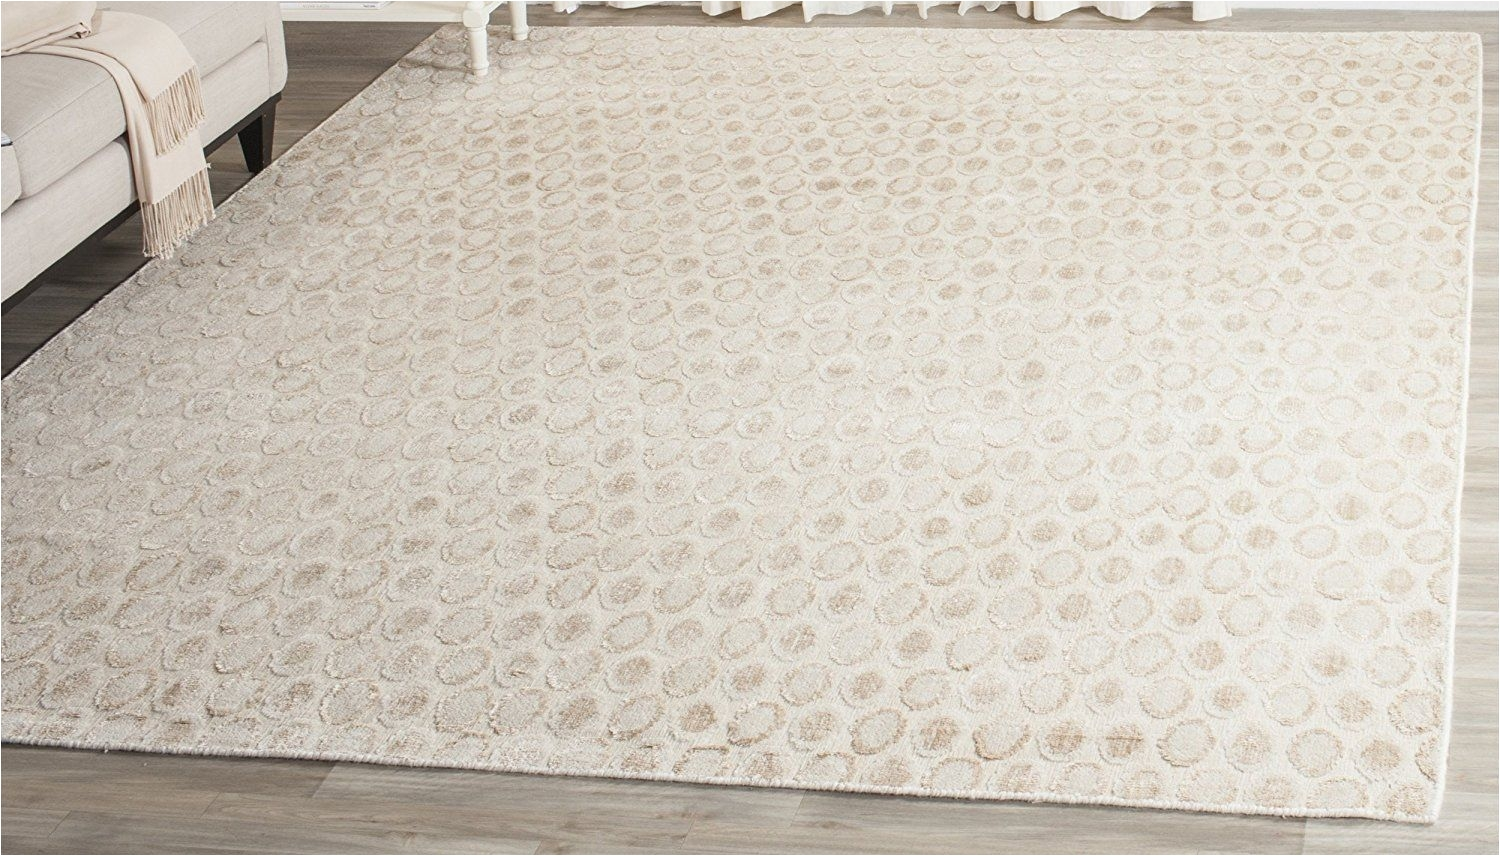 safavieh mir856a 9 mirage collection hand woven beige wool area rug 9 x